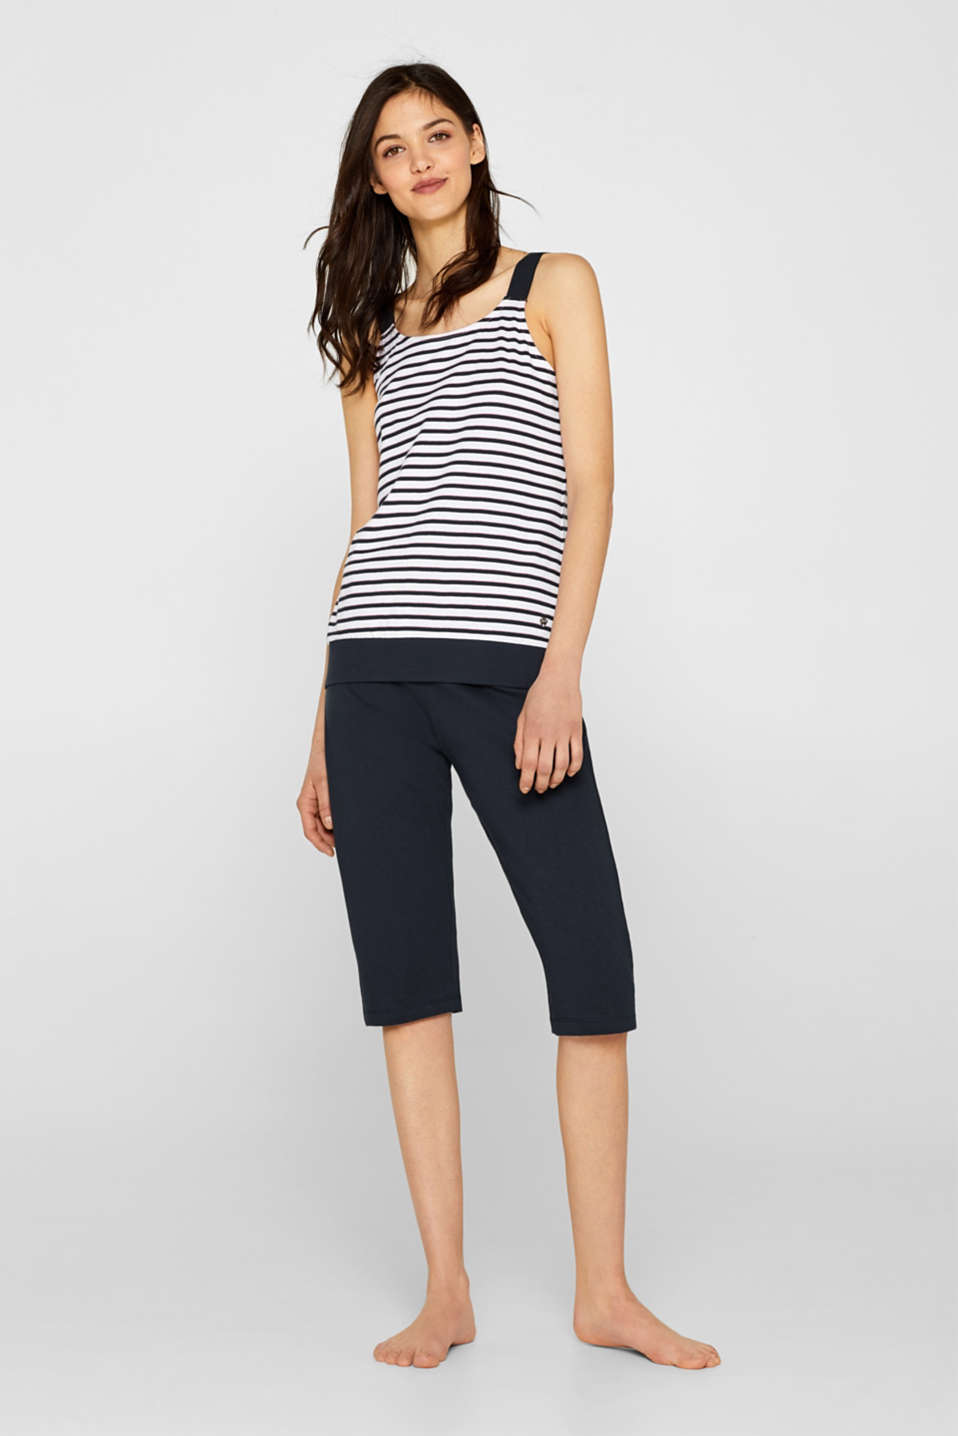 Esprit - Jersey pyjamas with a strappy top, 100% cotton